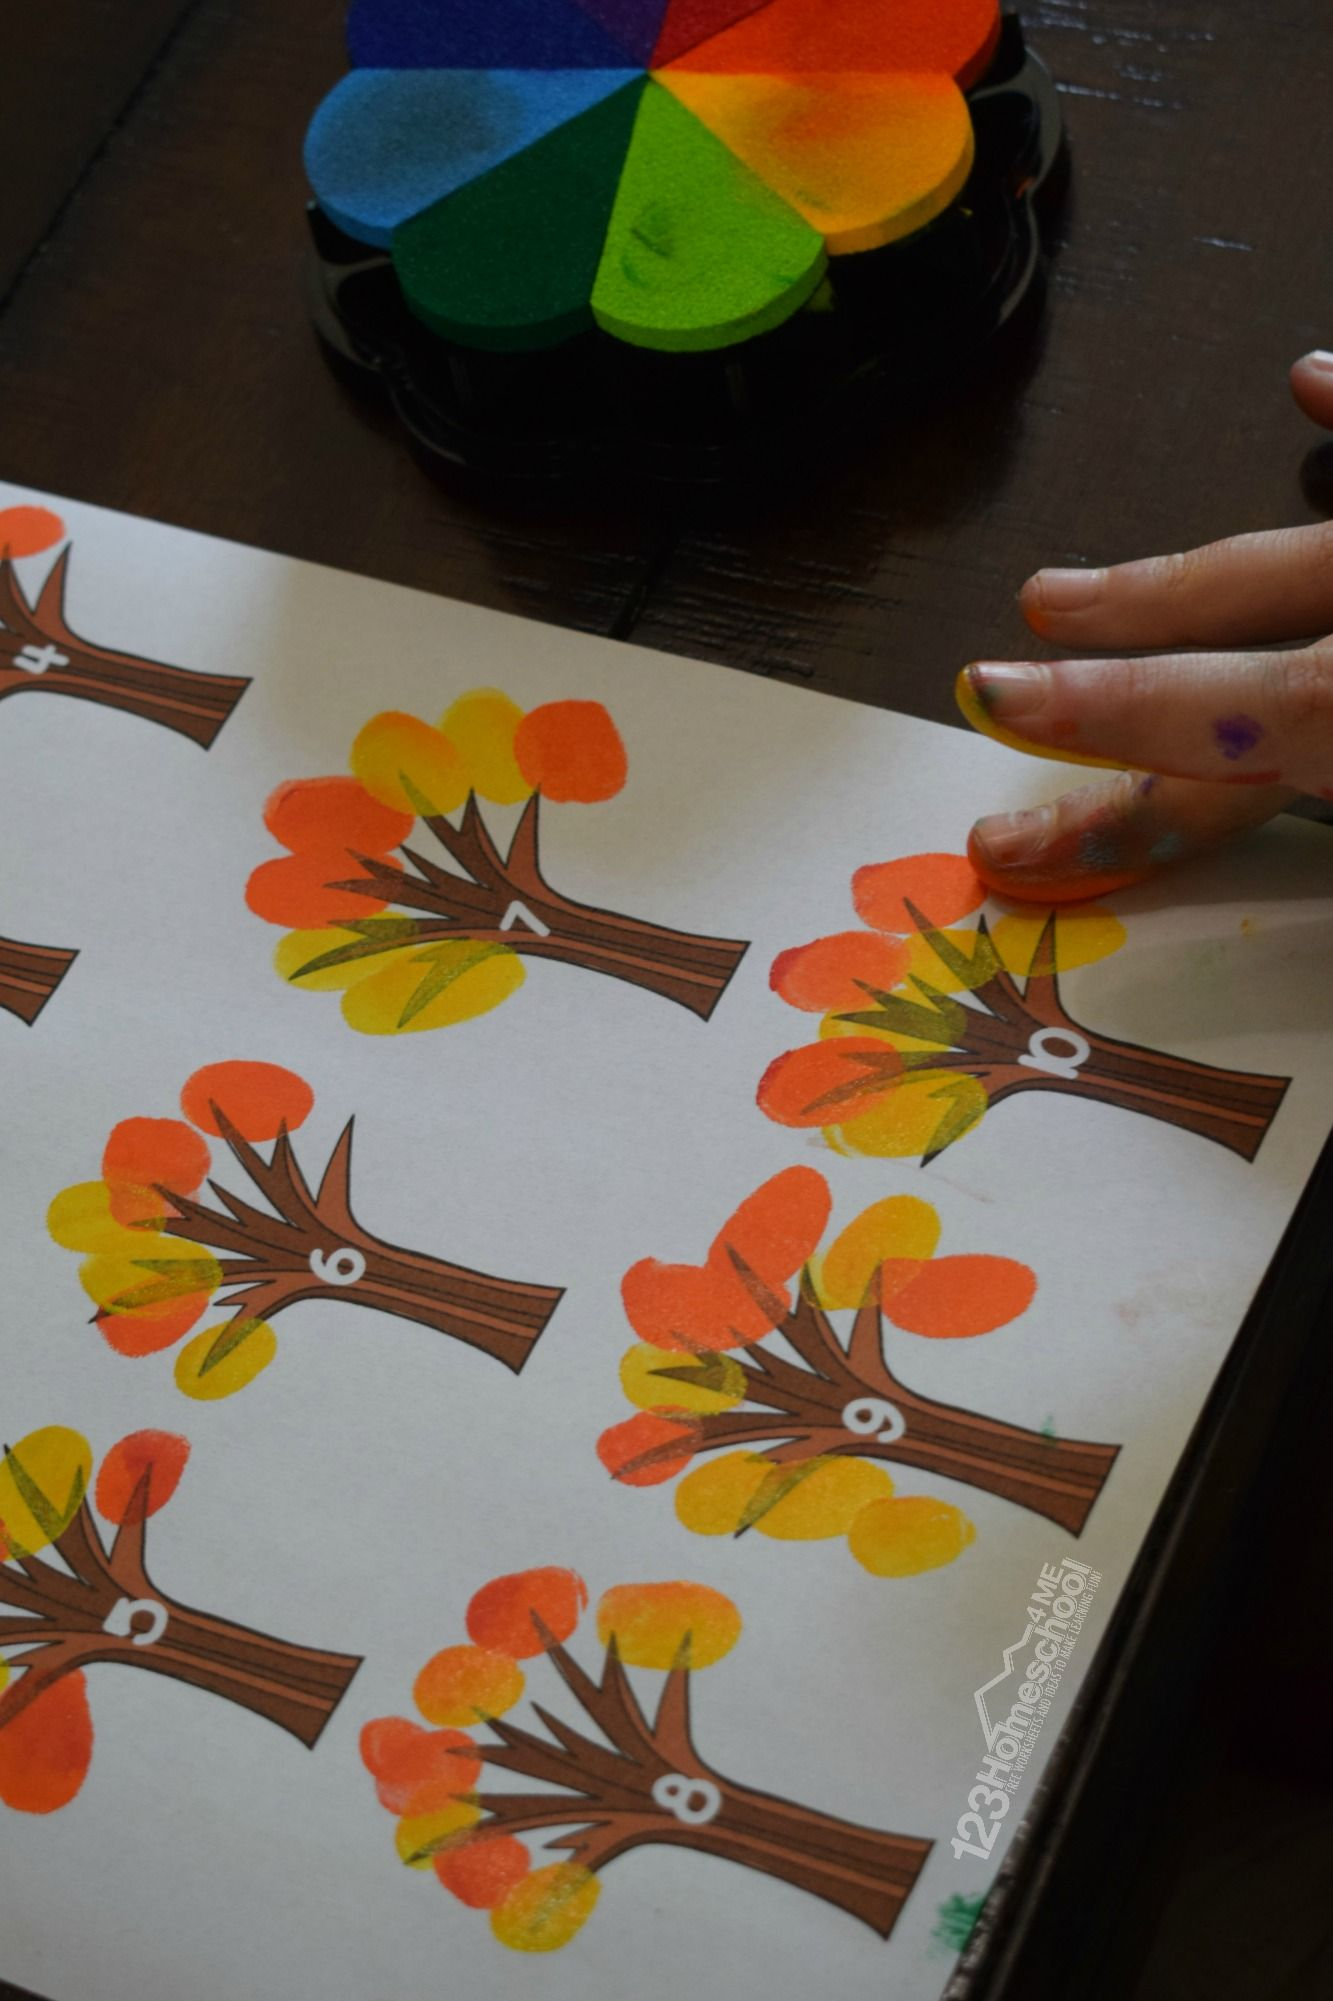 FREE Fingerprint Counting Worksheets #fallactivitiesforkids